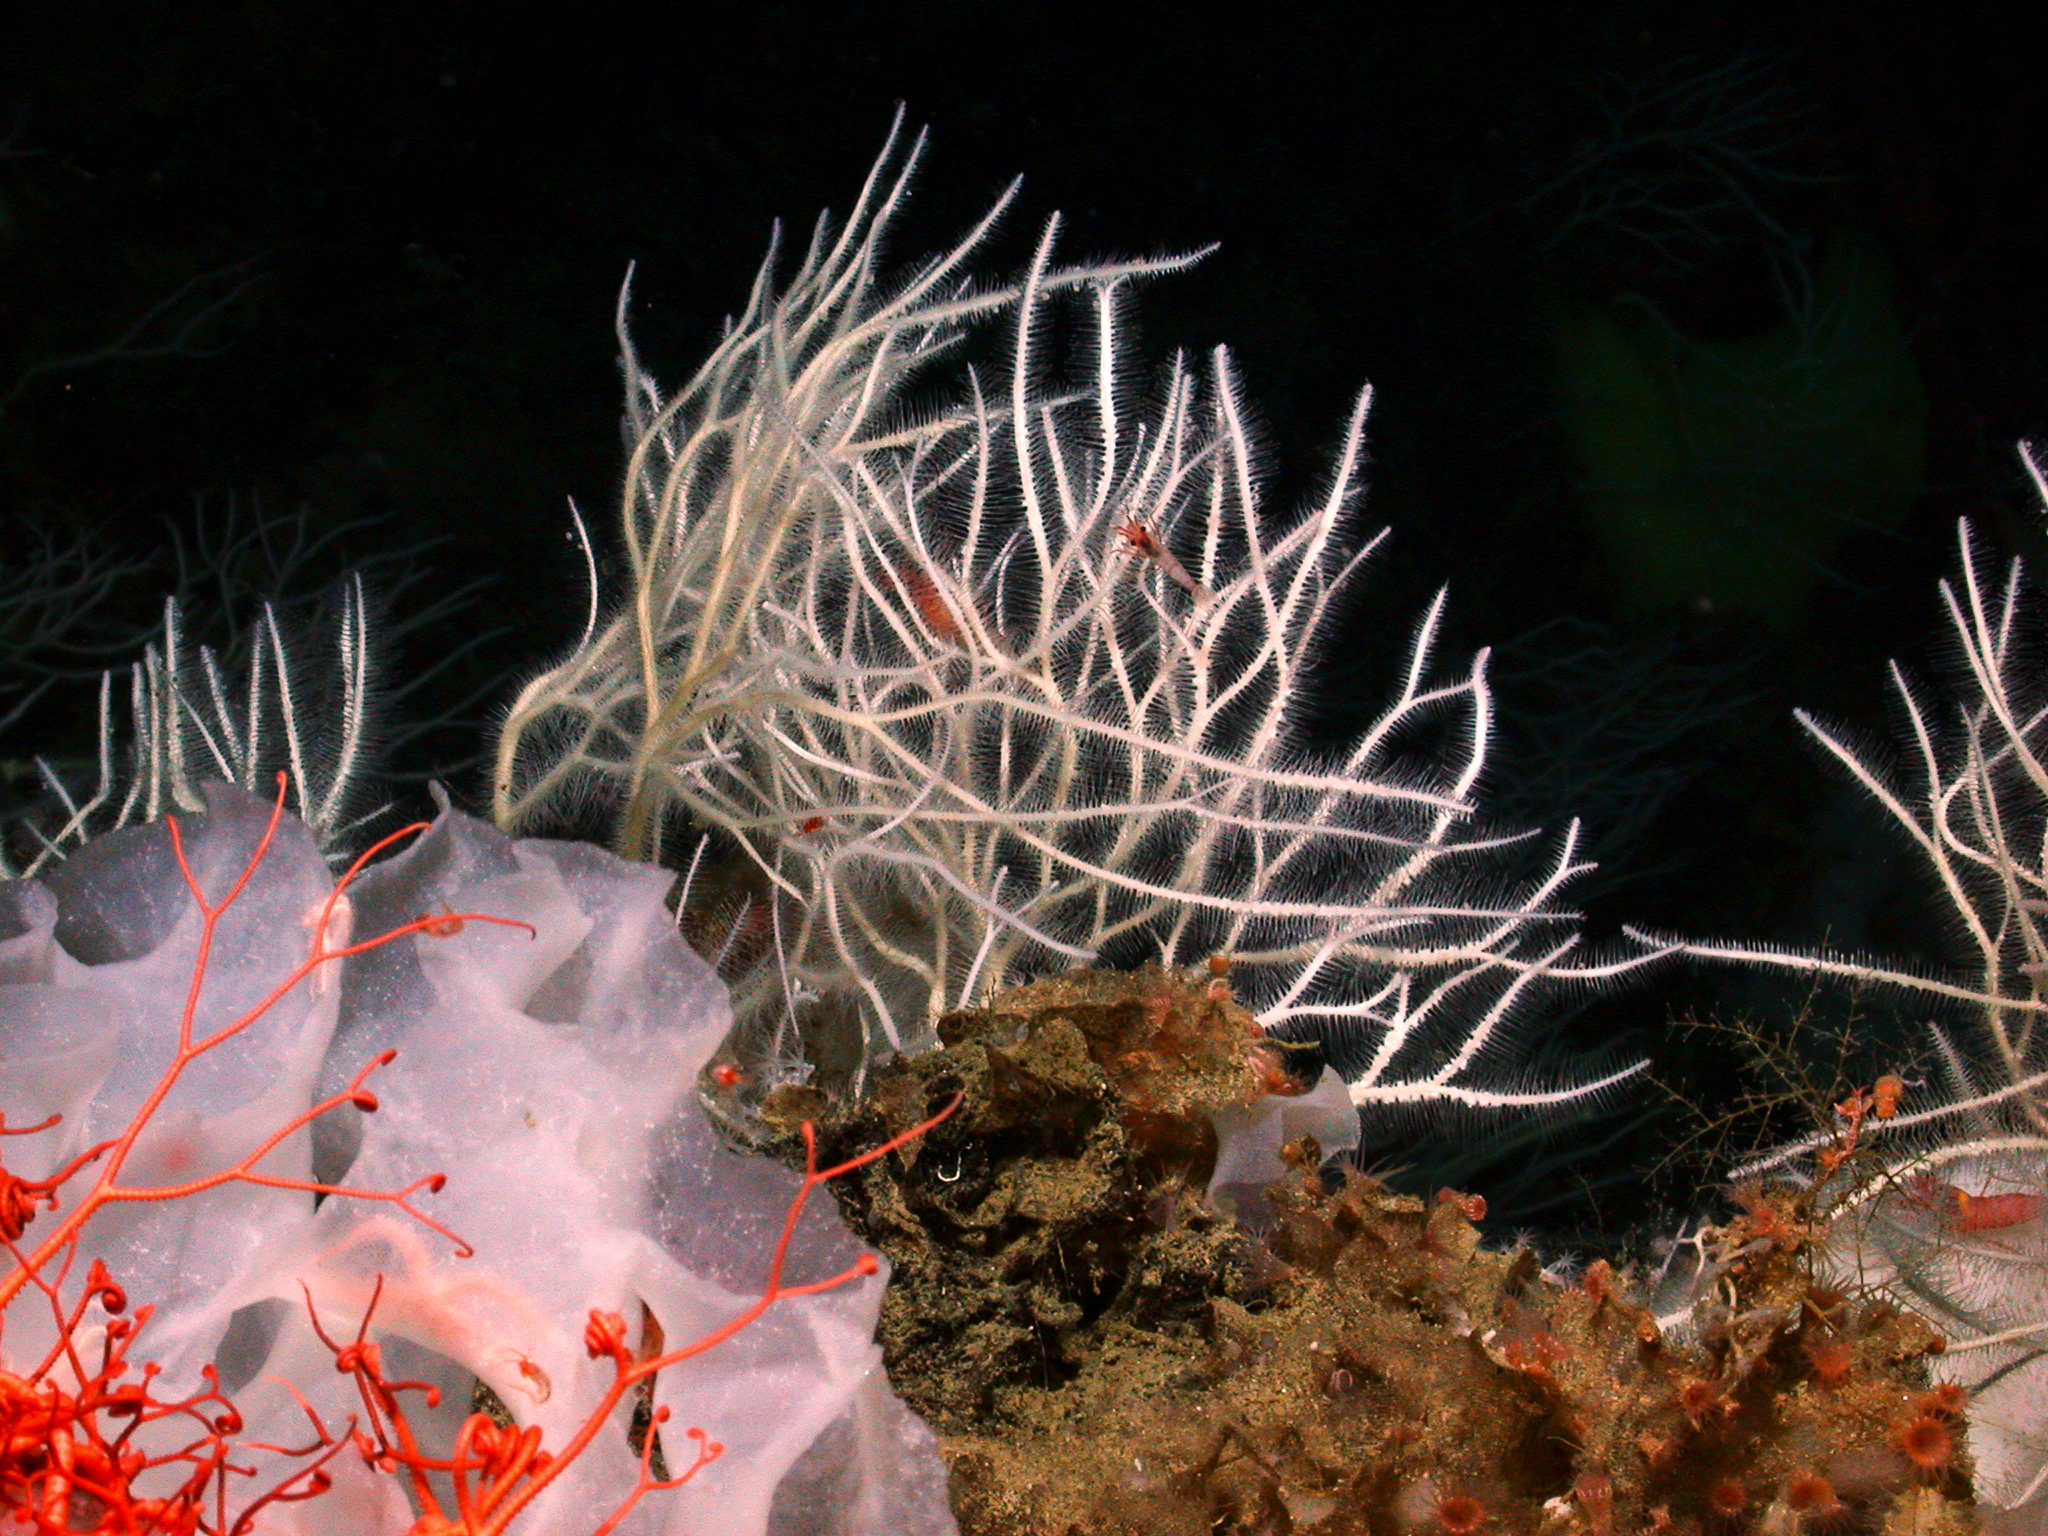 A soft, innocent looking sea sponge extends its tiny hooks in hopes of catching its dinner (image courtesy of National Geographic).